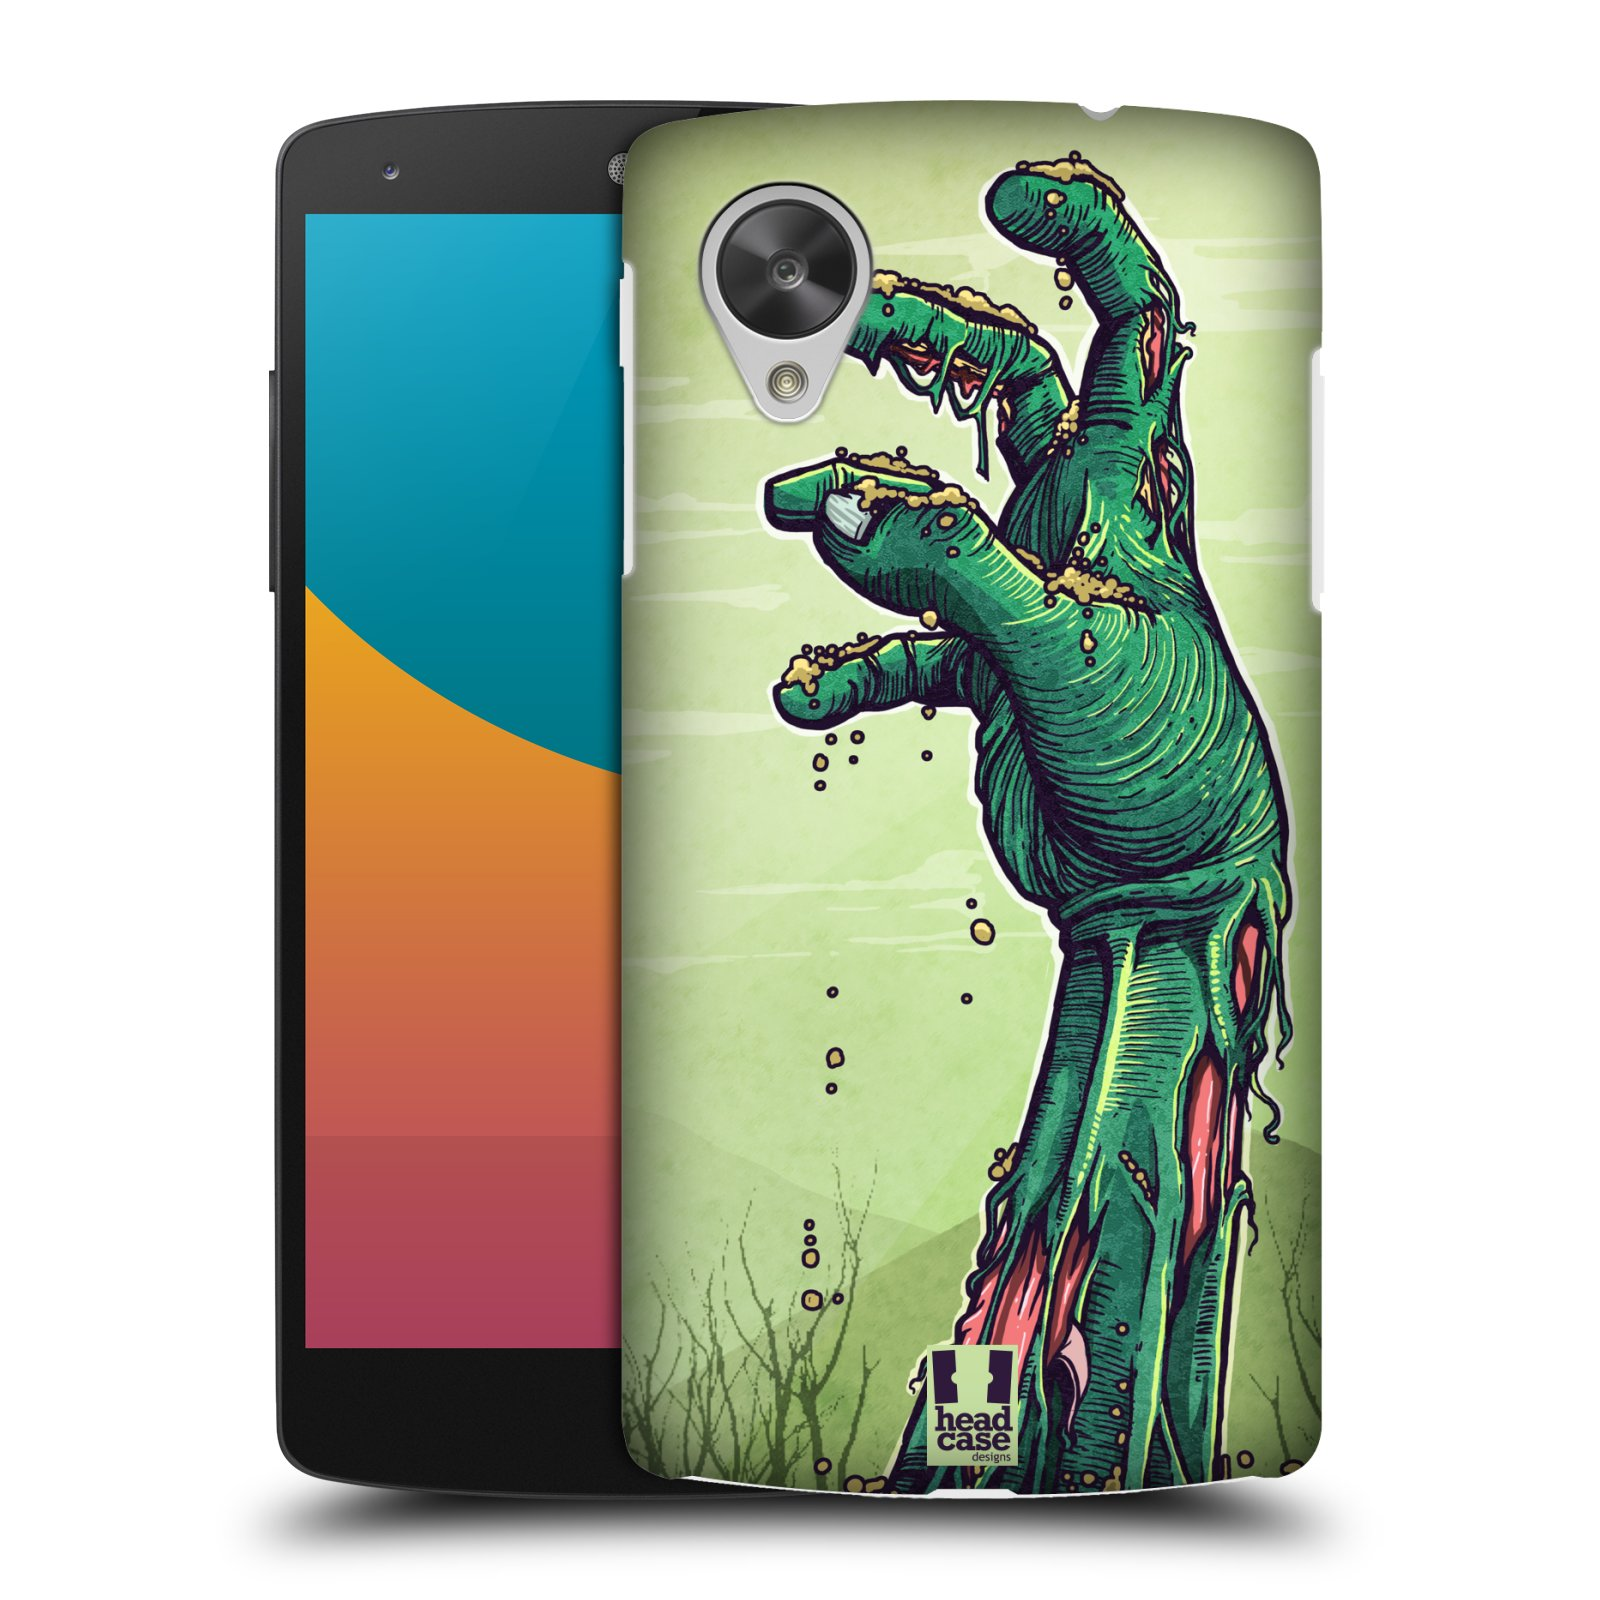 HEAD CASE DESIGNS ZOMBIES CASE COVER FOR LG GOOGLE NEXUS 5 D821